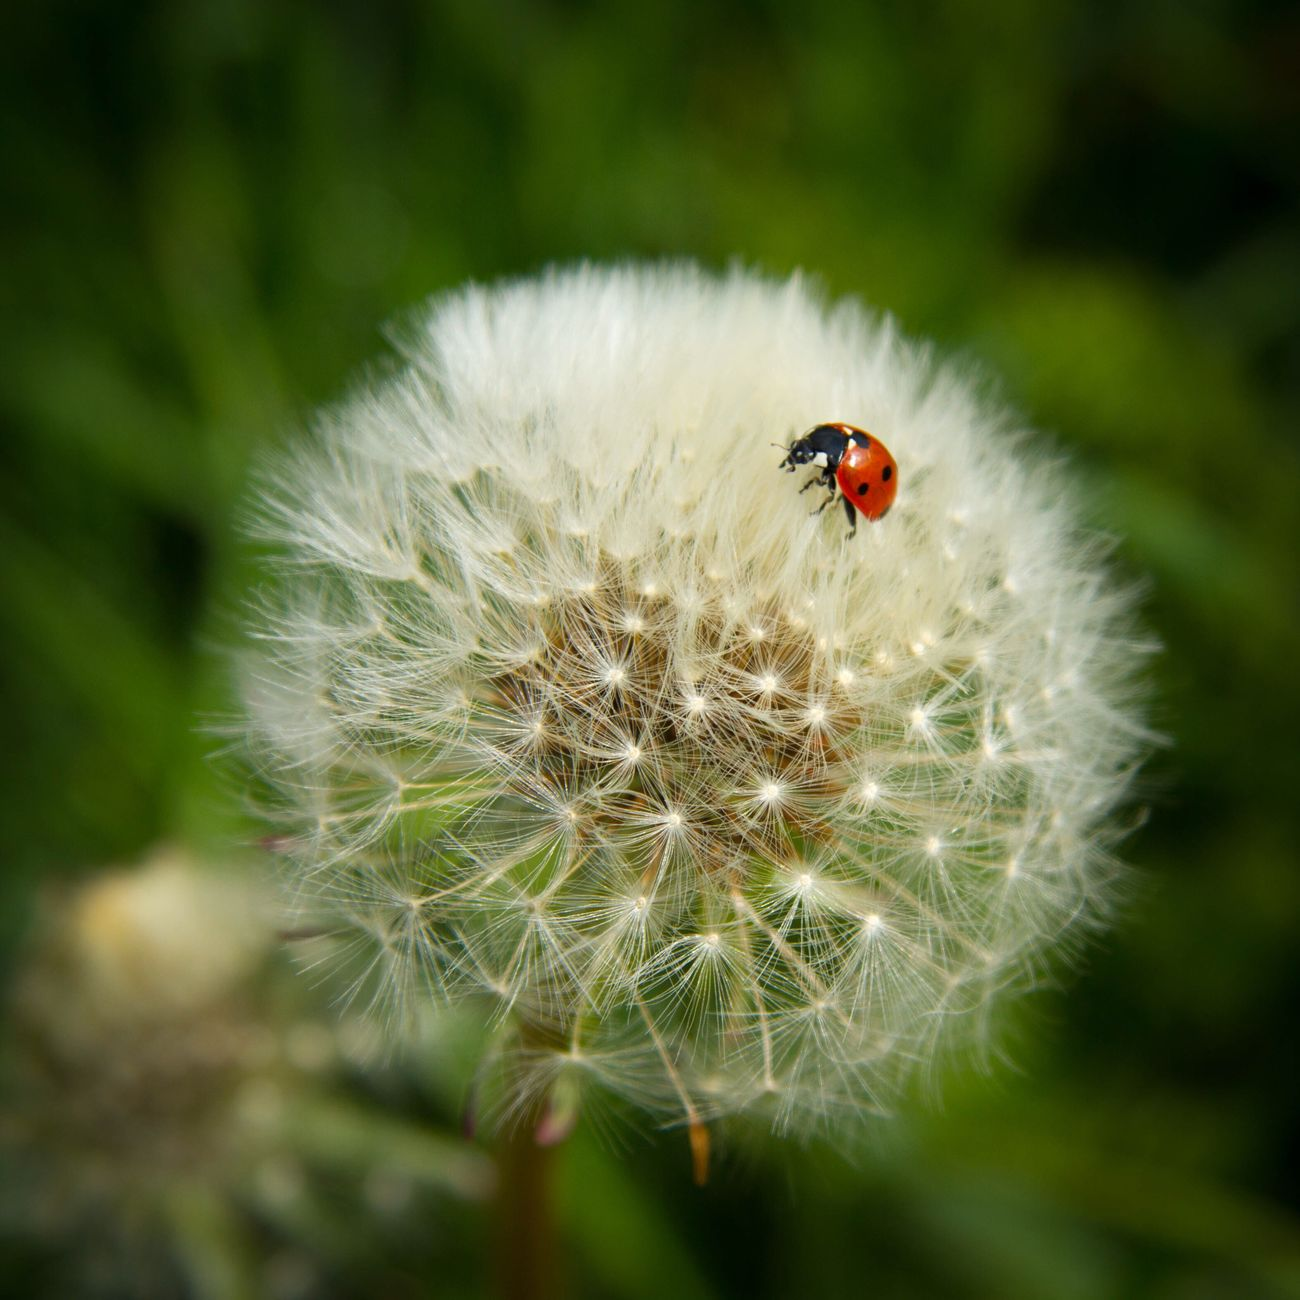 Ladybug Ladybird Nature Dandelion Wild Red Wildlife Balance Fragility Beauty In Nature Insect